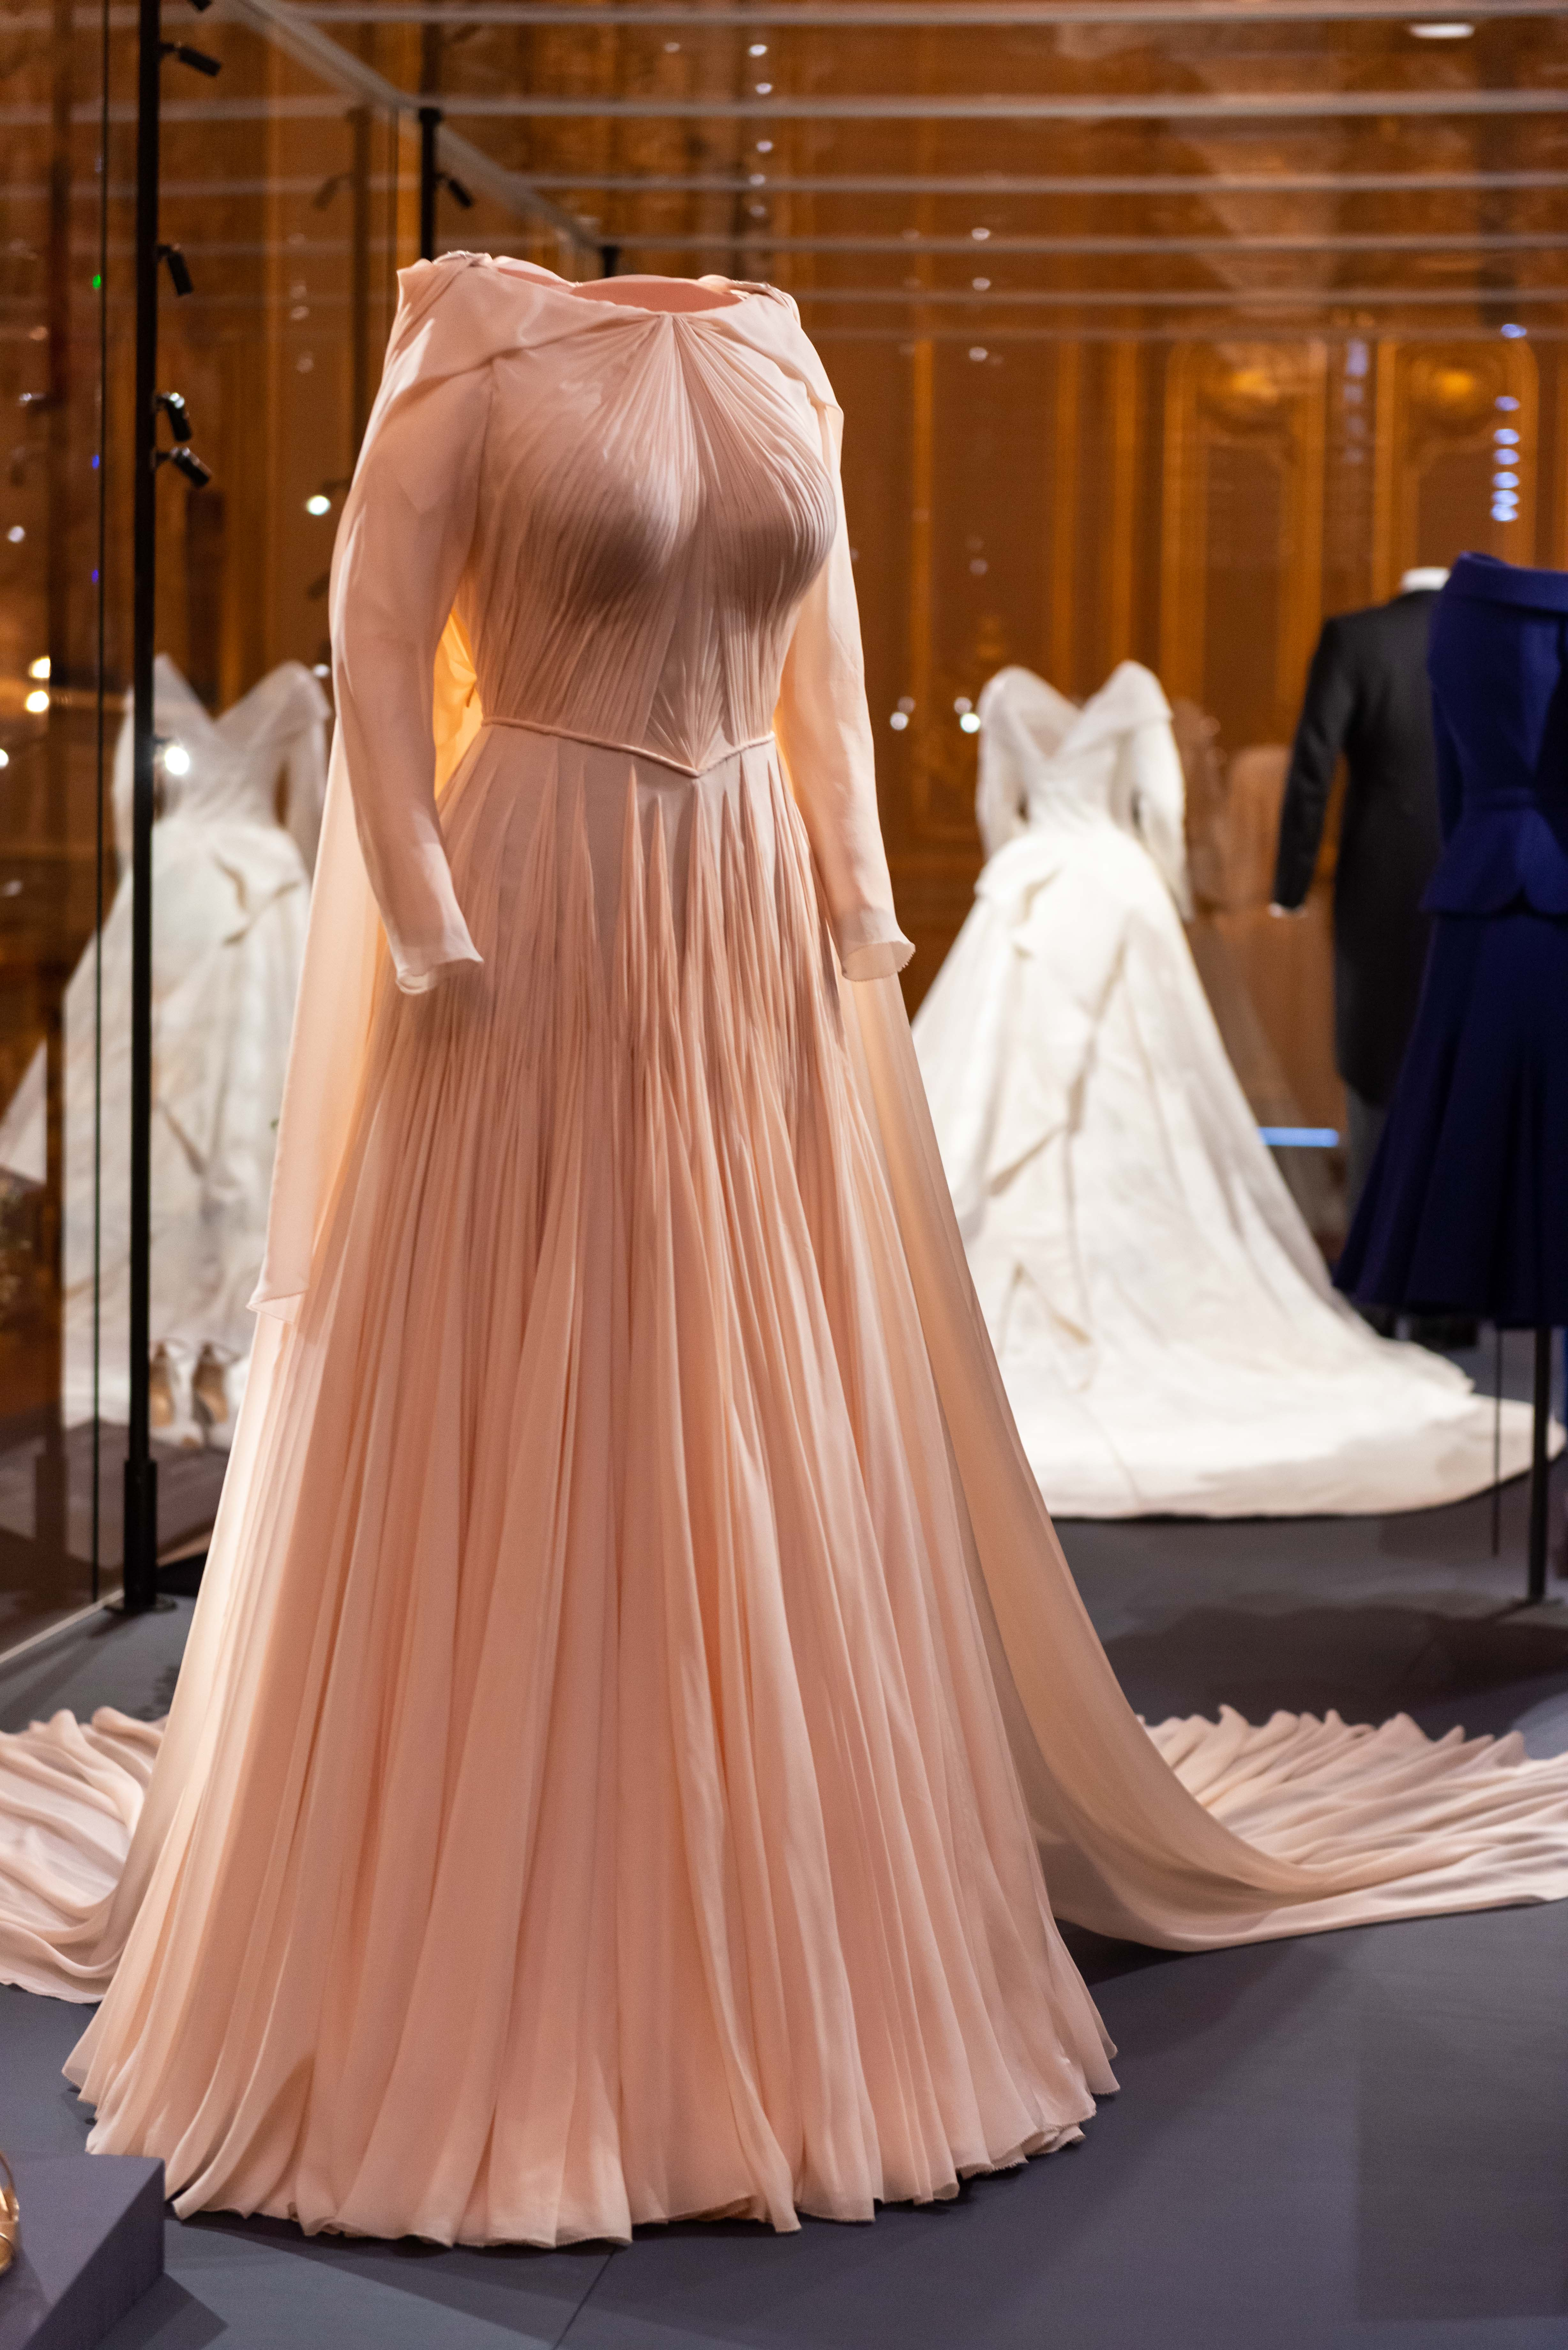 Princess Eugenie and Jack Brooksbanks wedding outfits to